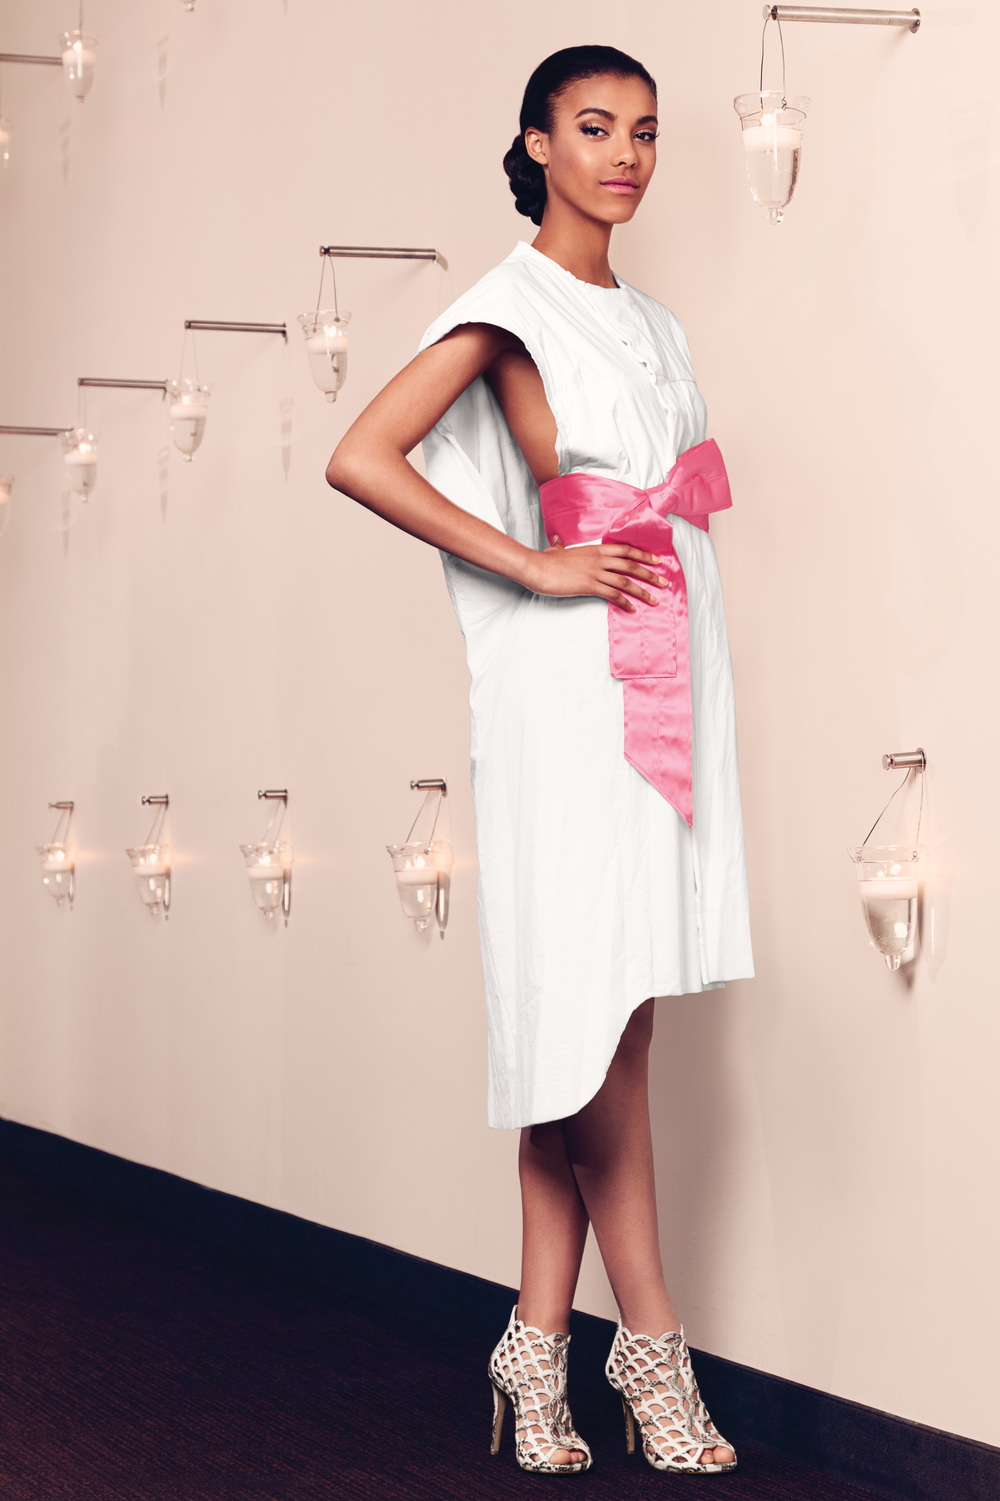 White Cashmere Collection 2014 - Pedram Karimi - Photographer, Koby Inc.jpg